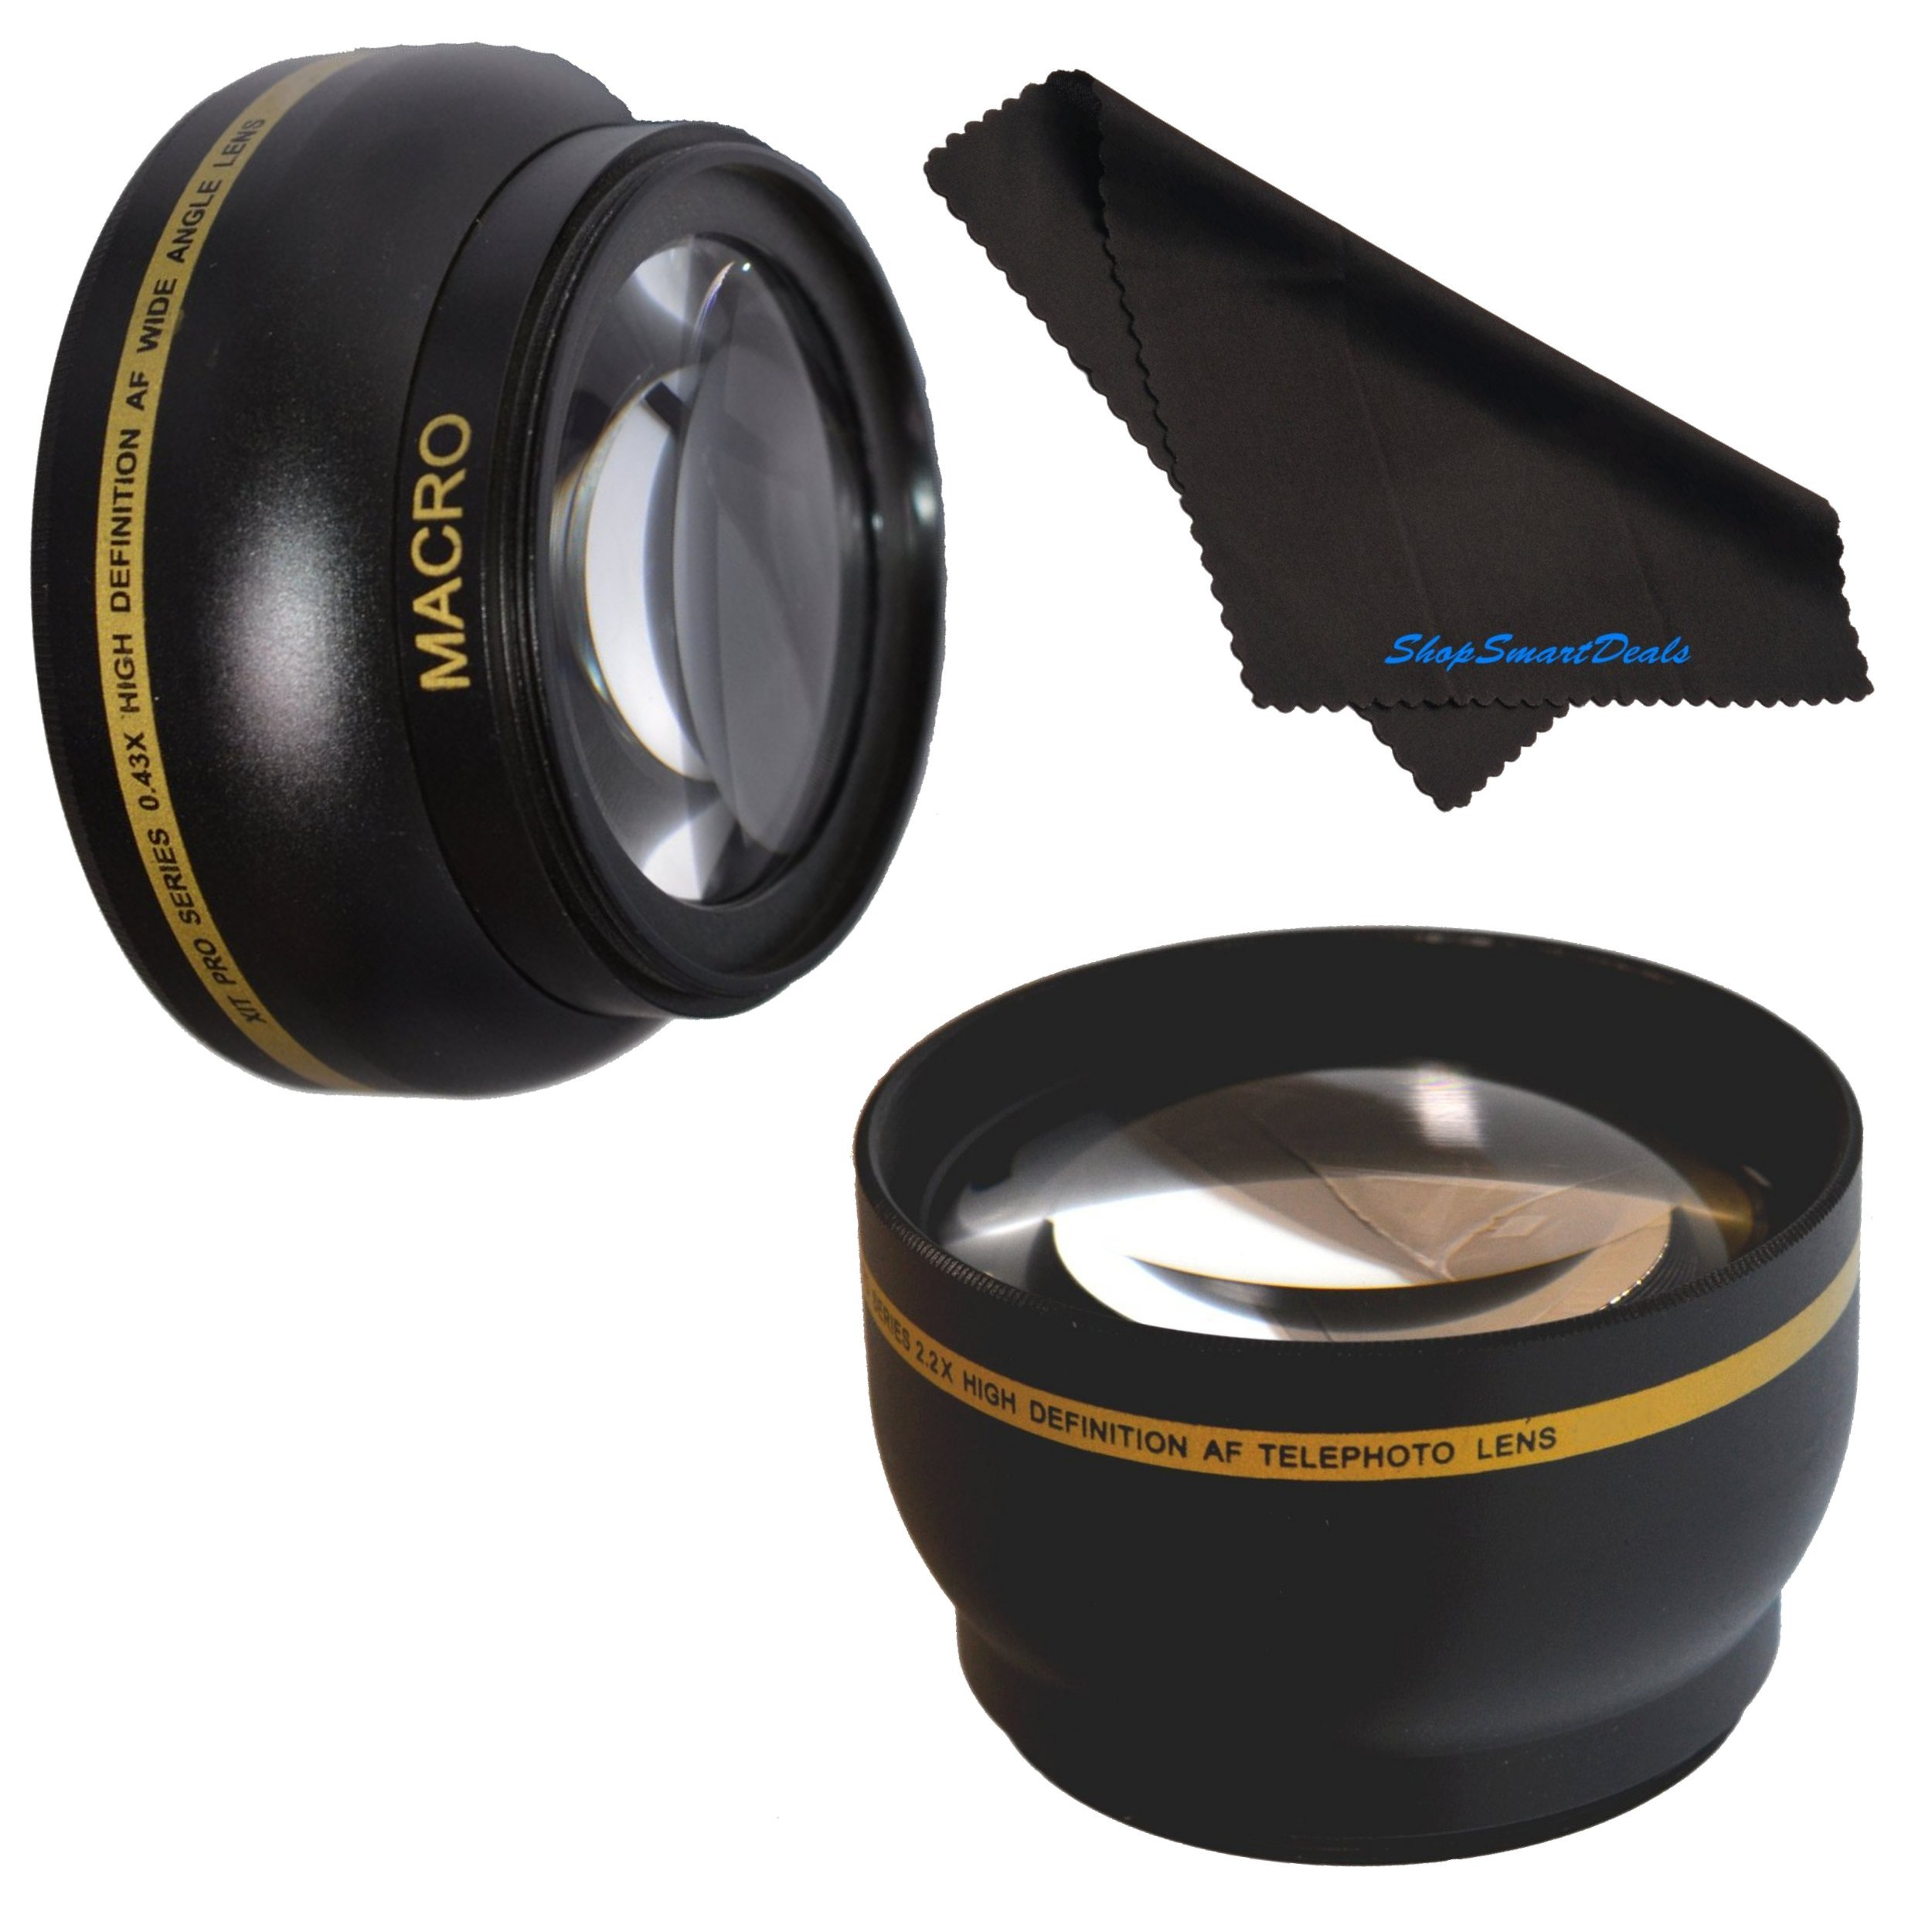 72mm HD 2.2x Telephoto & .43x Wide Angle Lens Bundle for Canon EF 180mm f/3.5L Macro USM 72mm Wide Angle Lens, 72mm Telephoto Lens, 72mm Lens, 72mm Lens Kit